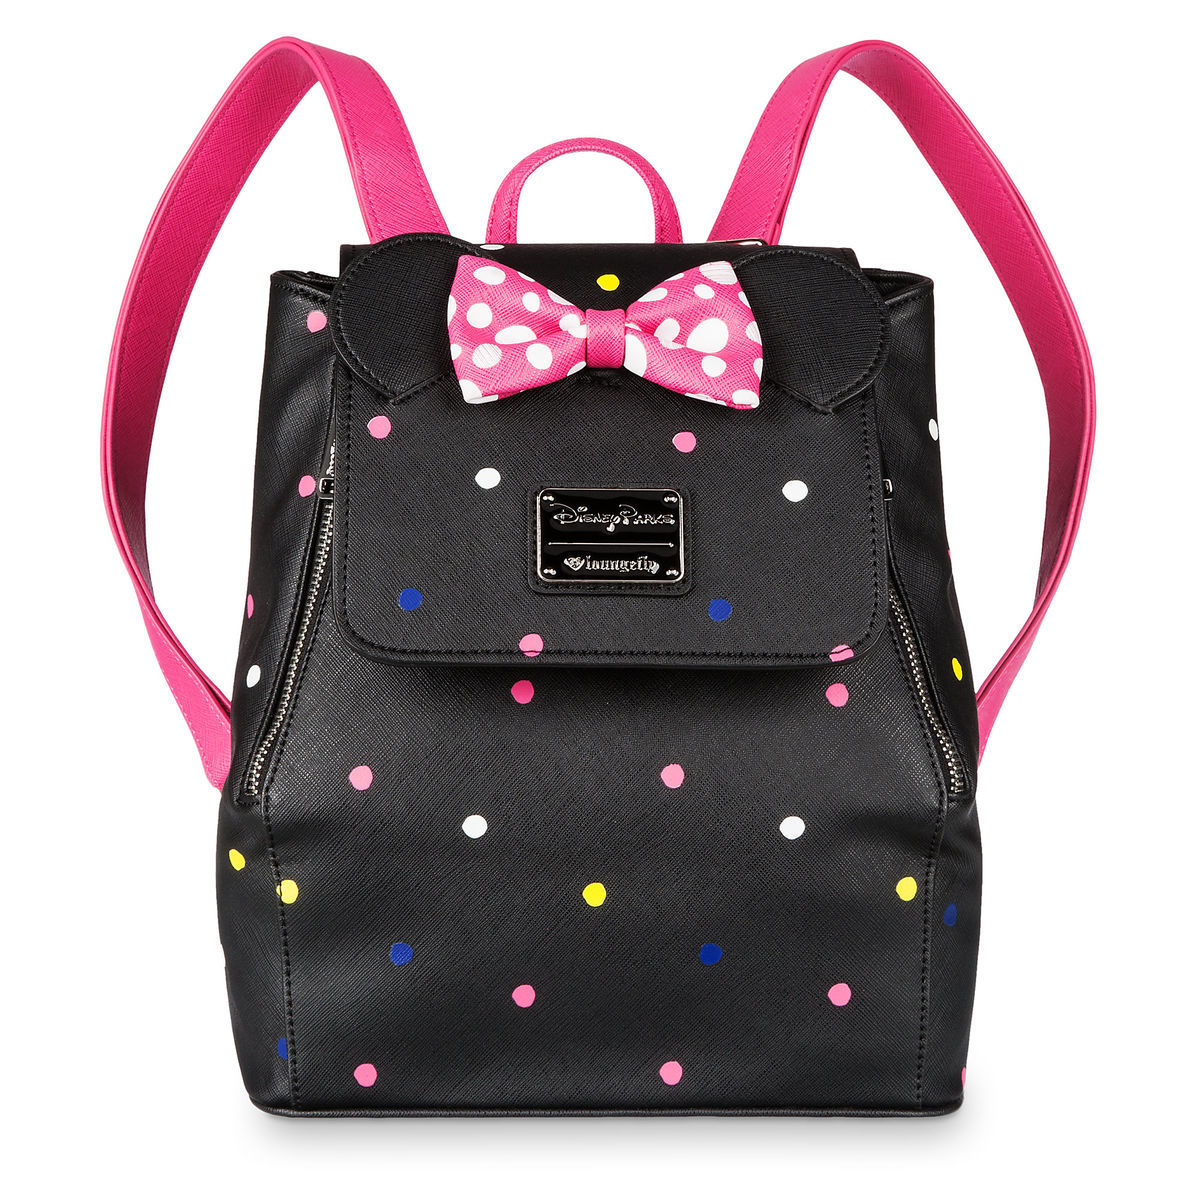 0ceadb1a98c Product Image of Minnie Mouse Mini Backpack by Loungefly   1